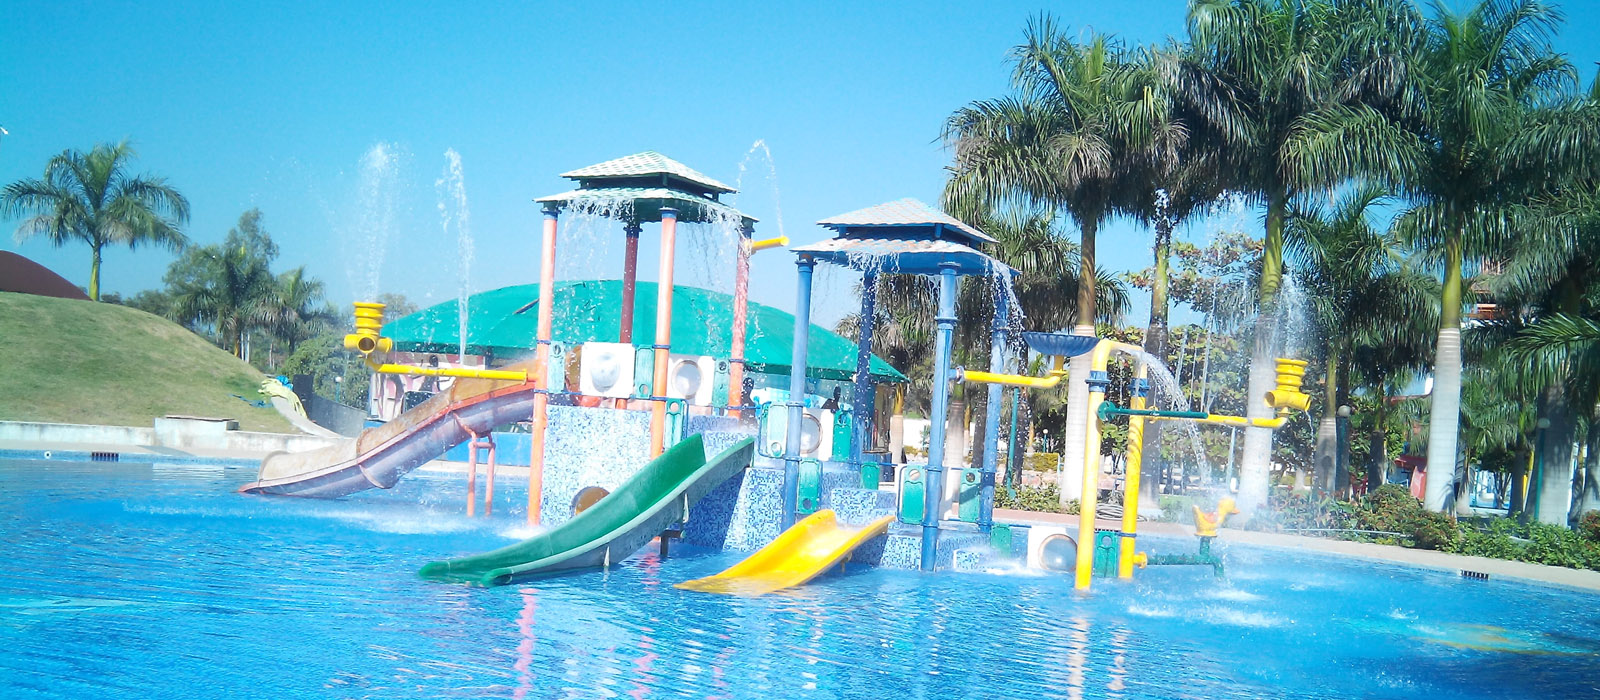 Best water theme park in bangalore dating